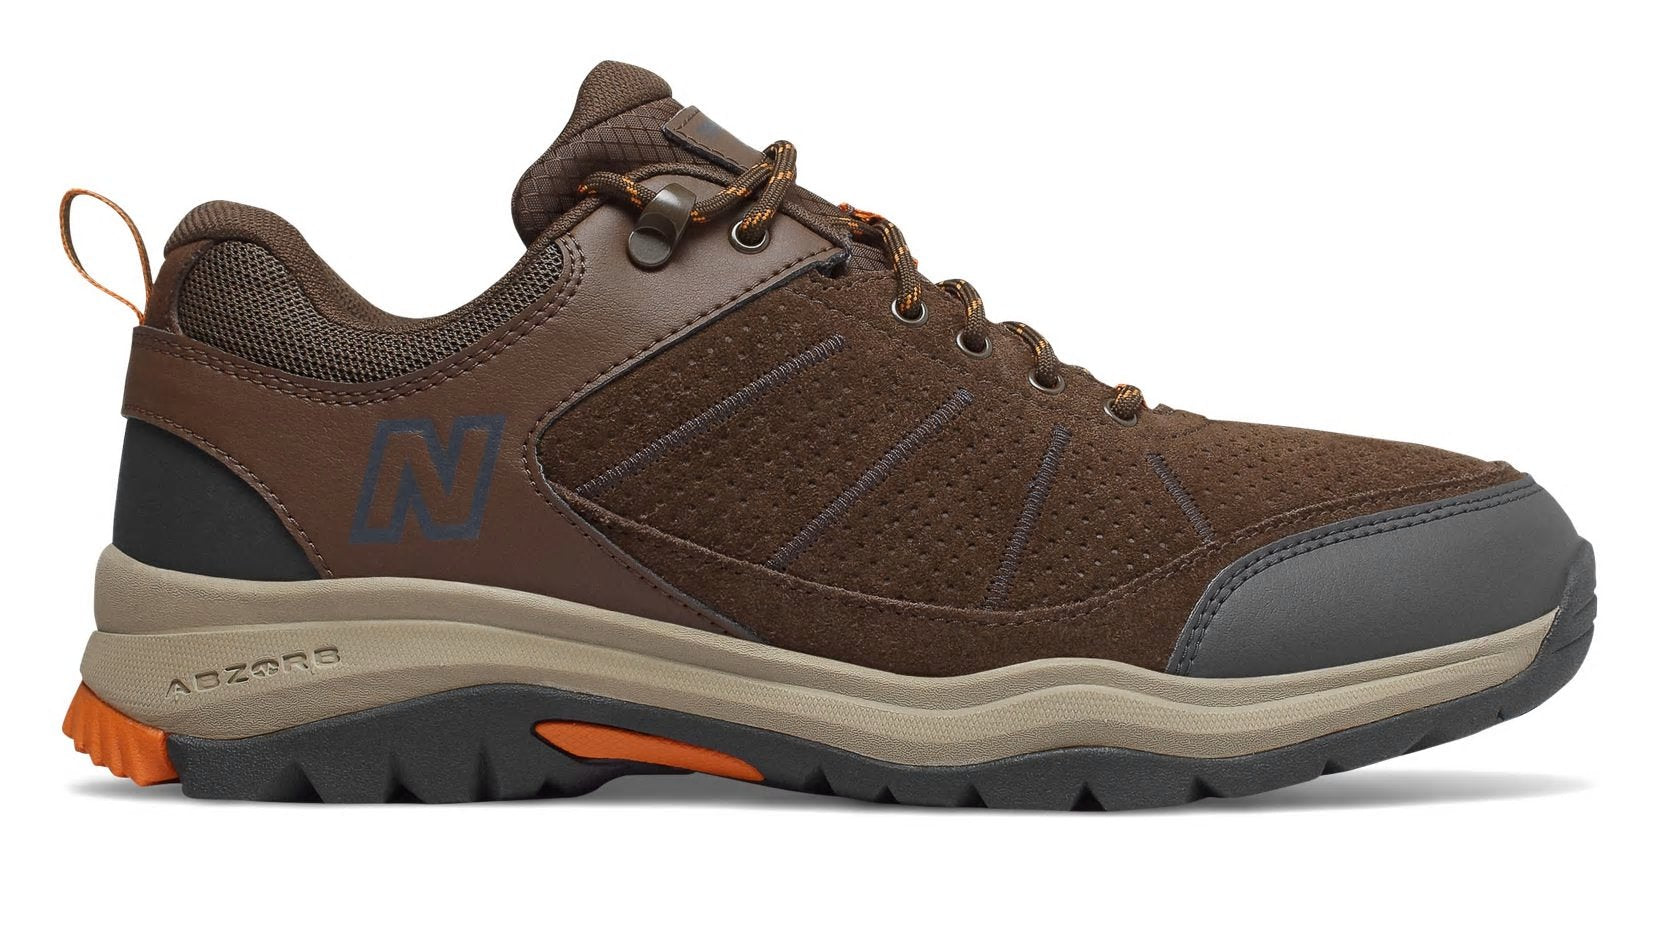 Men's New Balance 1201 - men's hiking shoes - Sports 4